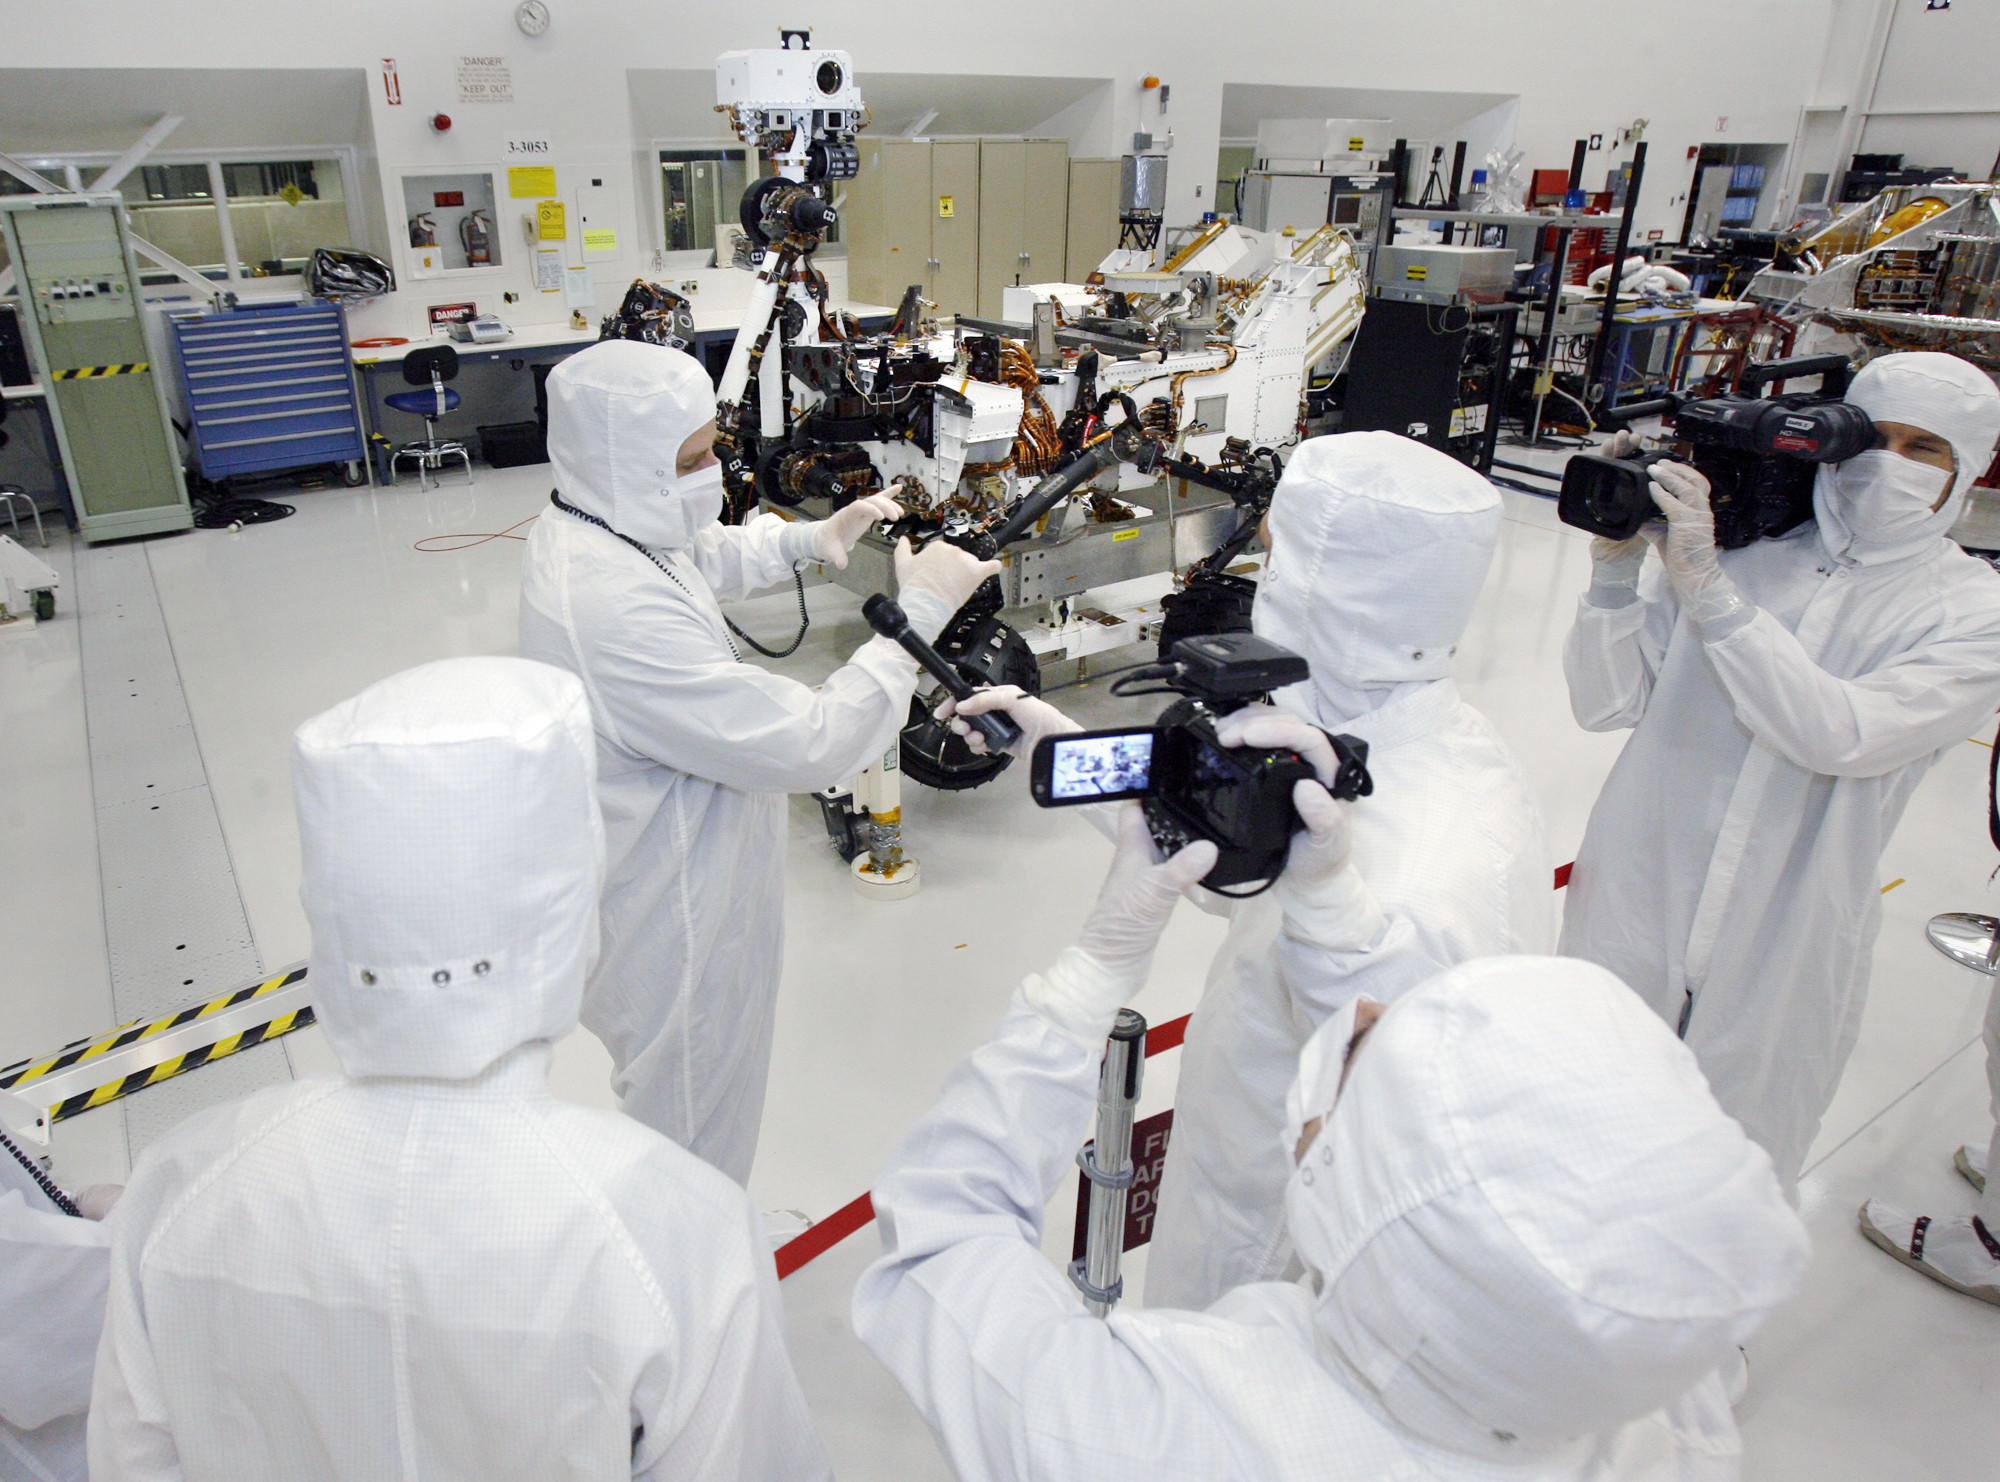 News media, including Bill Nye, the Science Guy, interview Peter Illsley, the rover integration lead, in the clean room at Jet Propulsion Laboratory on Monday, April 4, 2011, in La Cañada Flintridge where scientists assembled the Mars rover Curiosity.